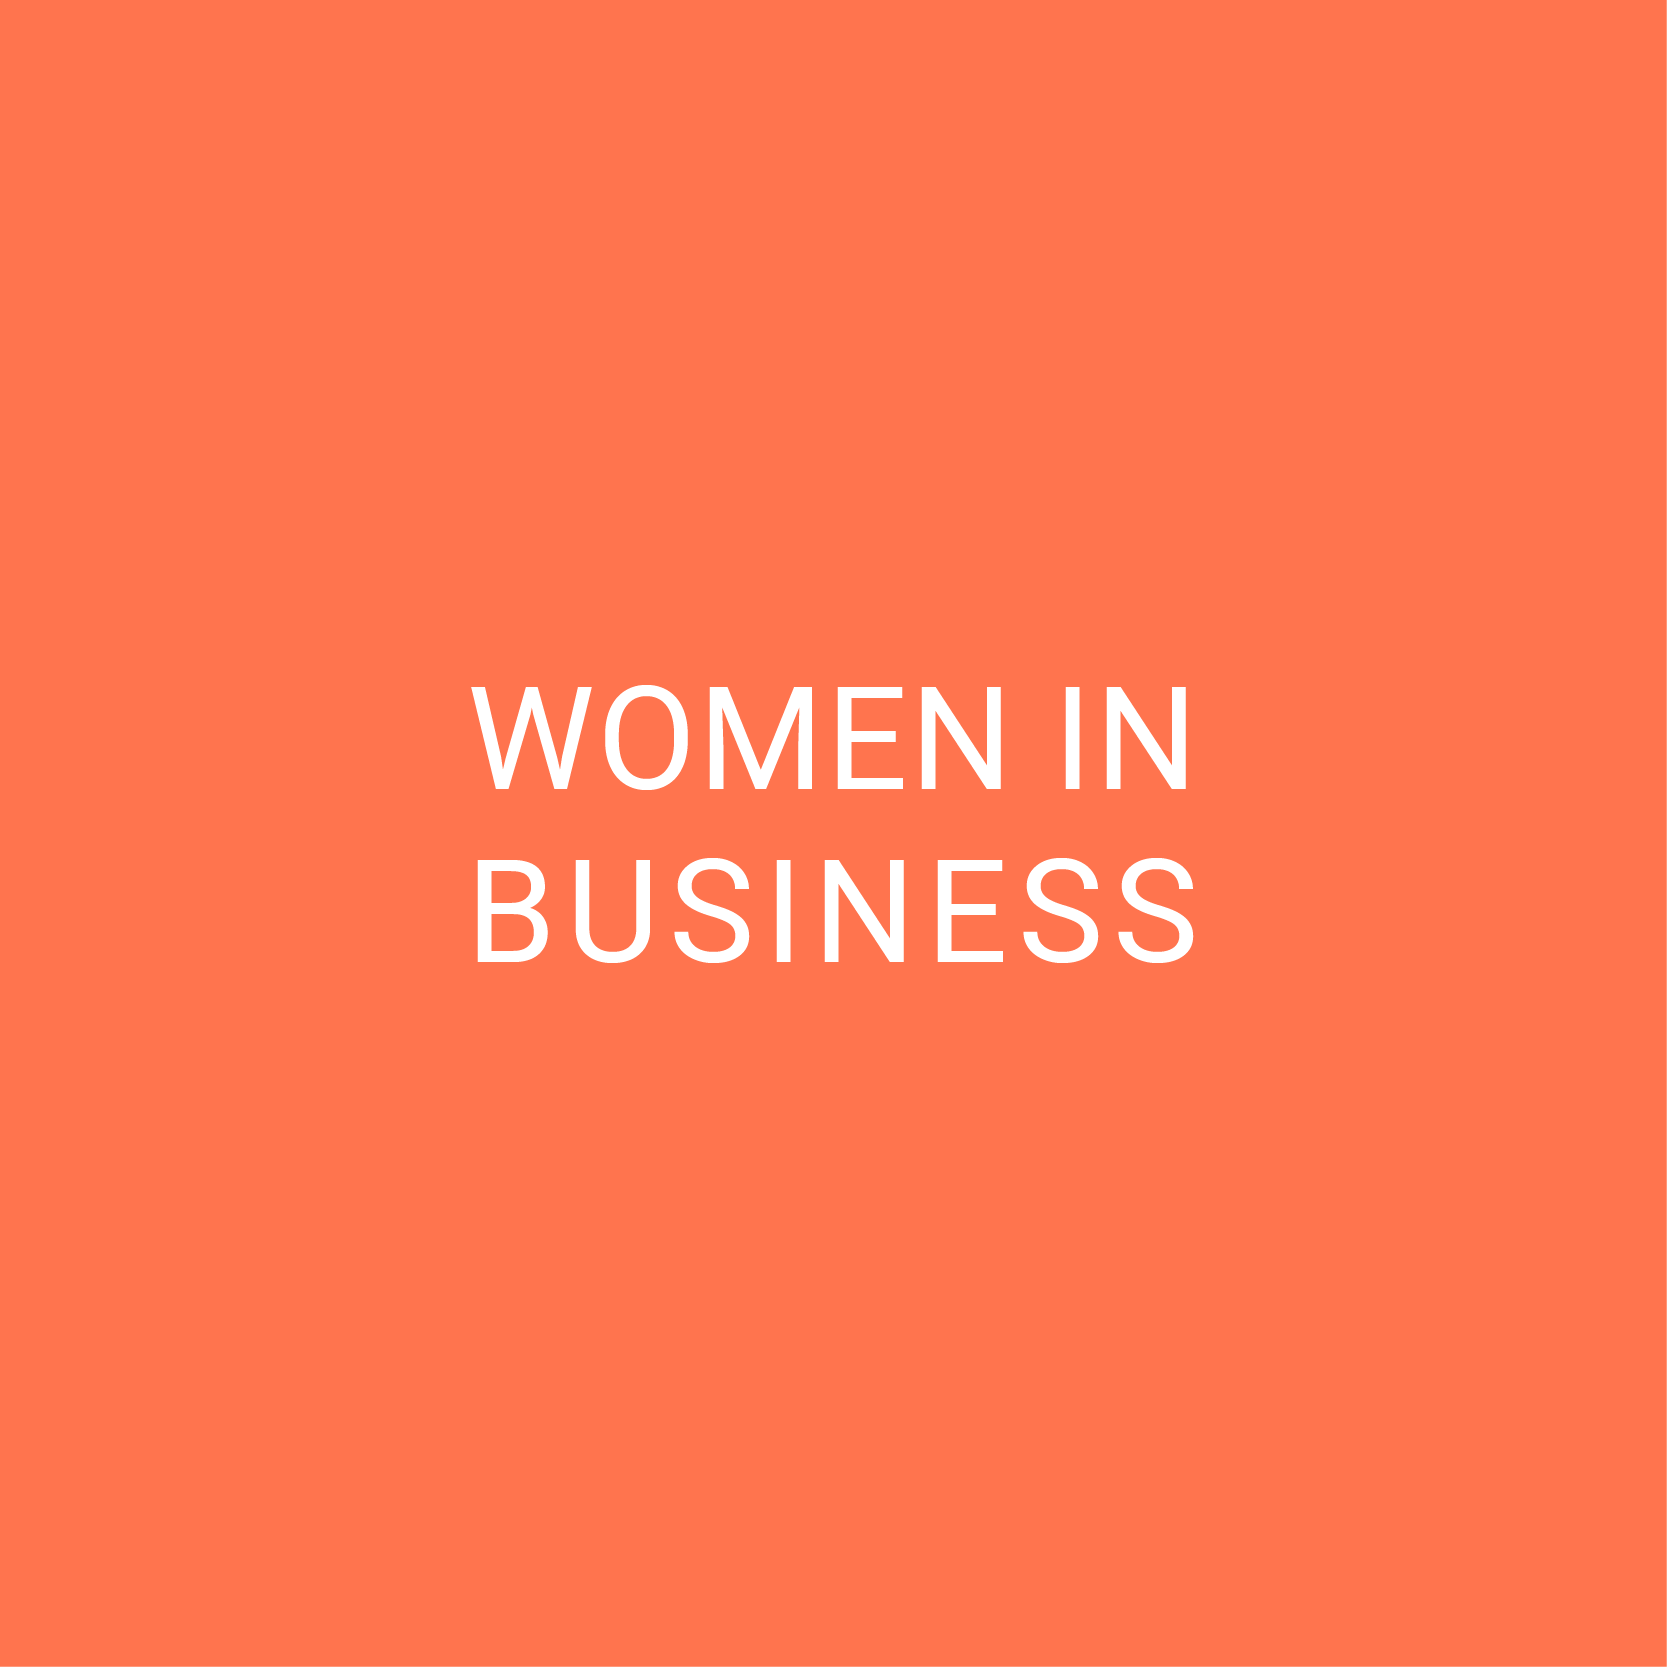 KFive   Women in Business   A space to learn from and be inspired by the women who are currently transforming the contemporary business environment. We hope that by recognising the achievements of these current female leaders we can empower those of the future.